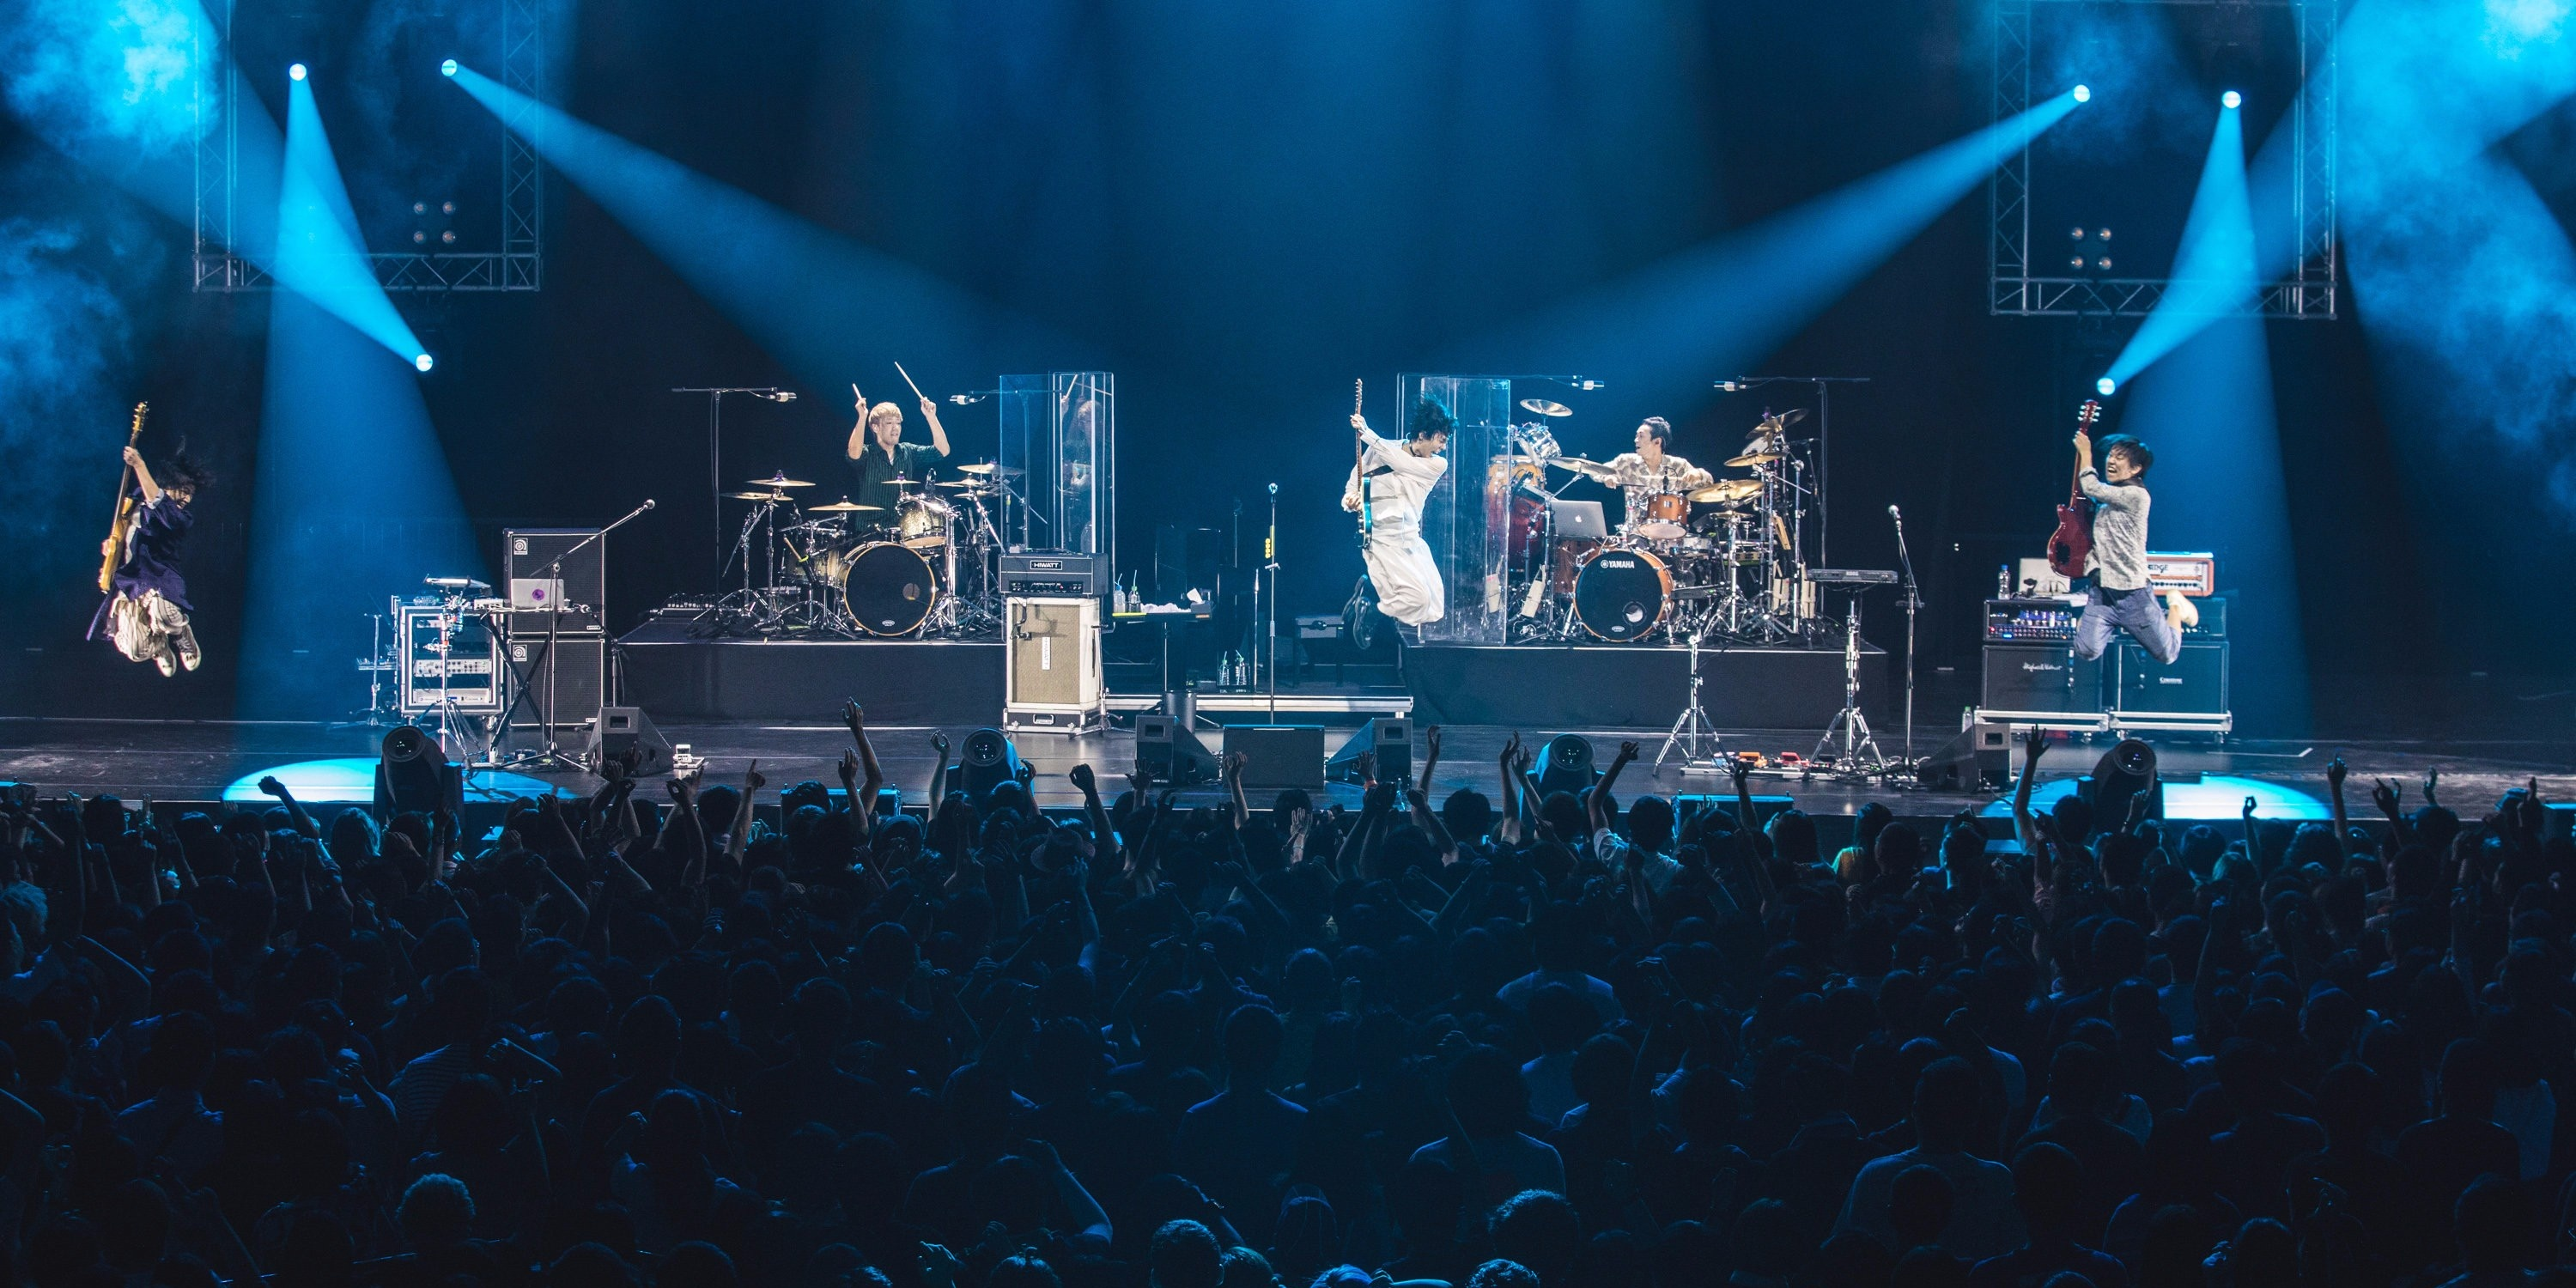 RADWIMPS return to Singapore for a spectacular sold-out concert — gig report